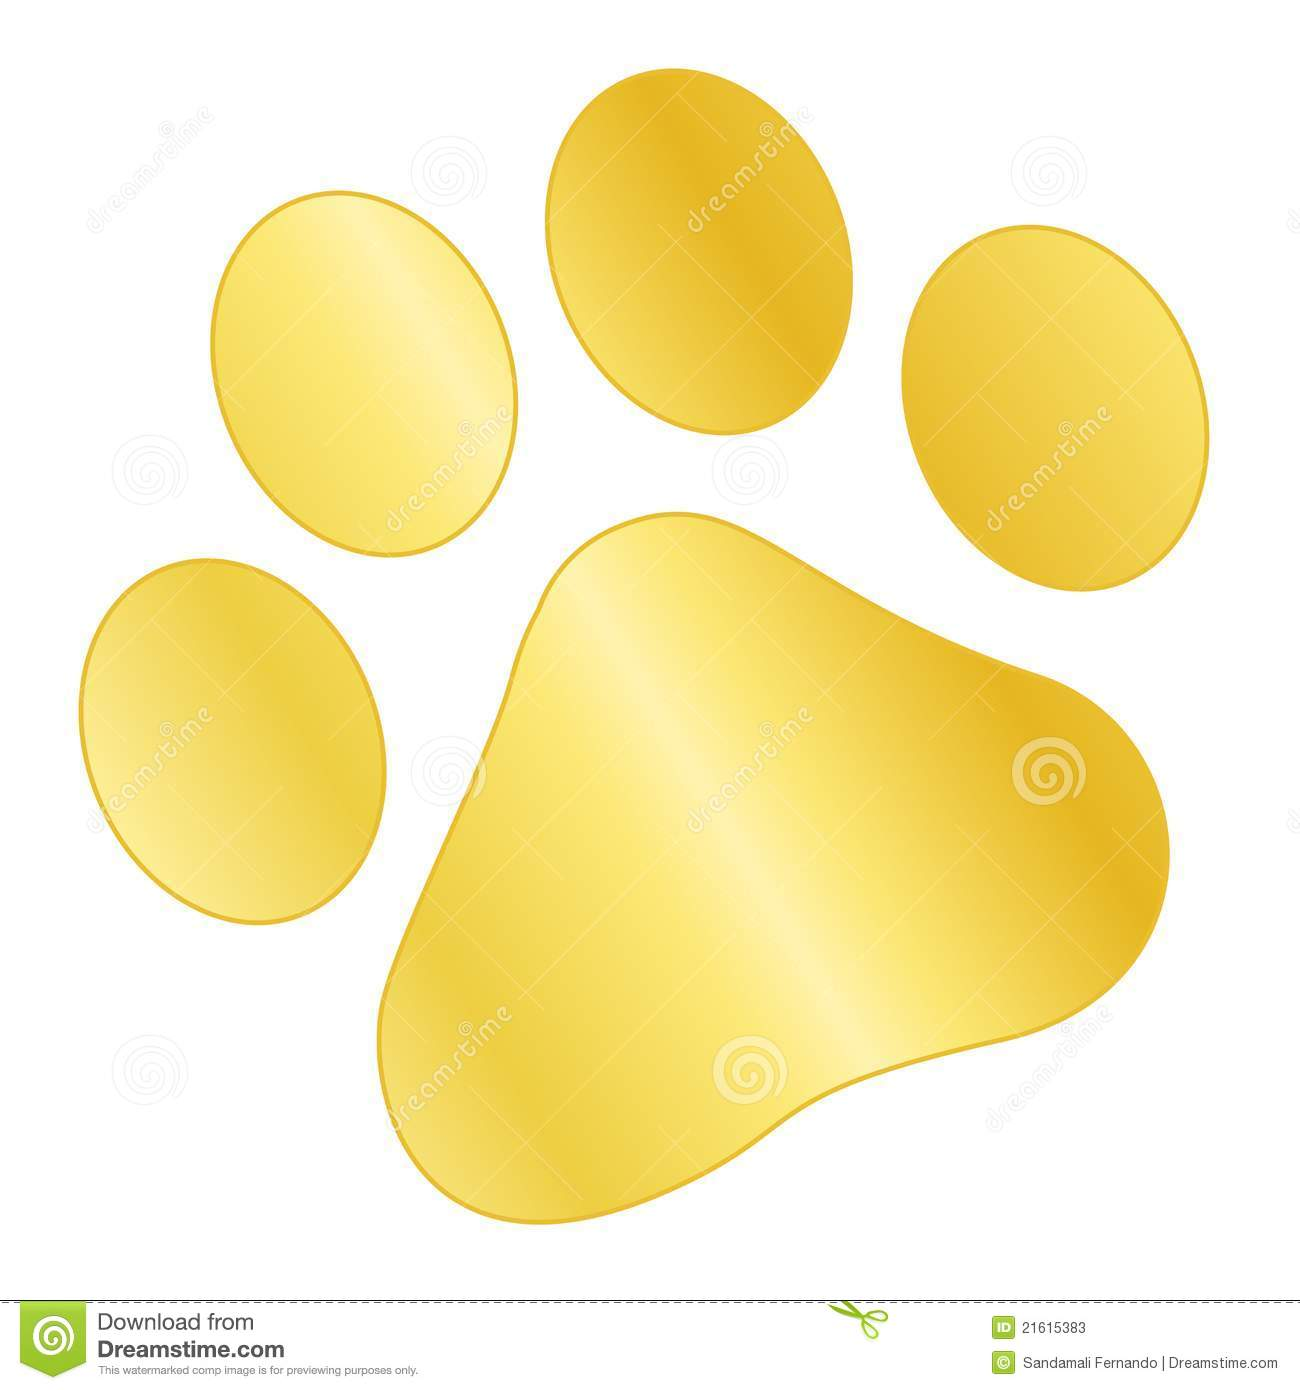 Cute pets [dogs and cats] paw print isolated on white background.